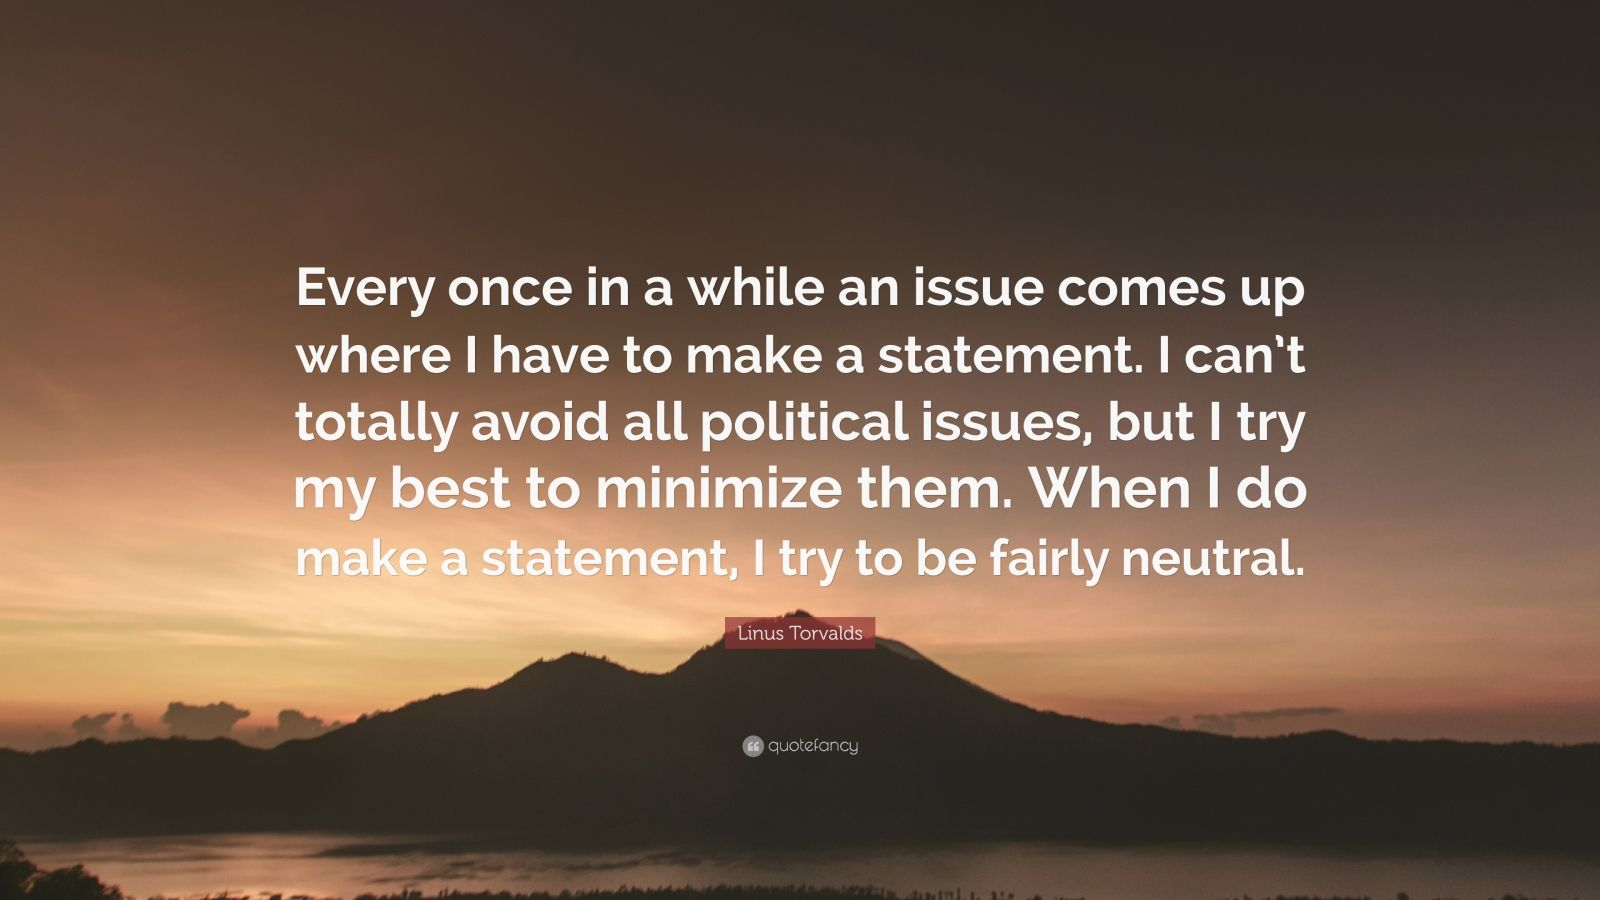 "Linus Torvalds Quote: ""Every once in a while an issue comes up where I have to make a statement. I can't totally avoid all political issues, but I try my best to minimize them. When I do make a statement, I try to be fairly neutral."""